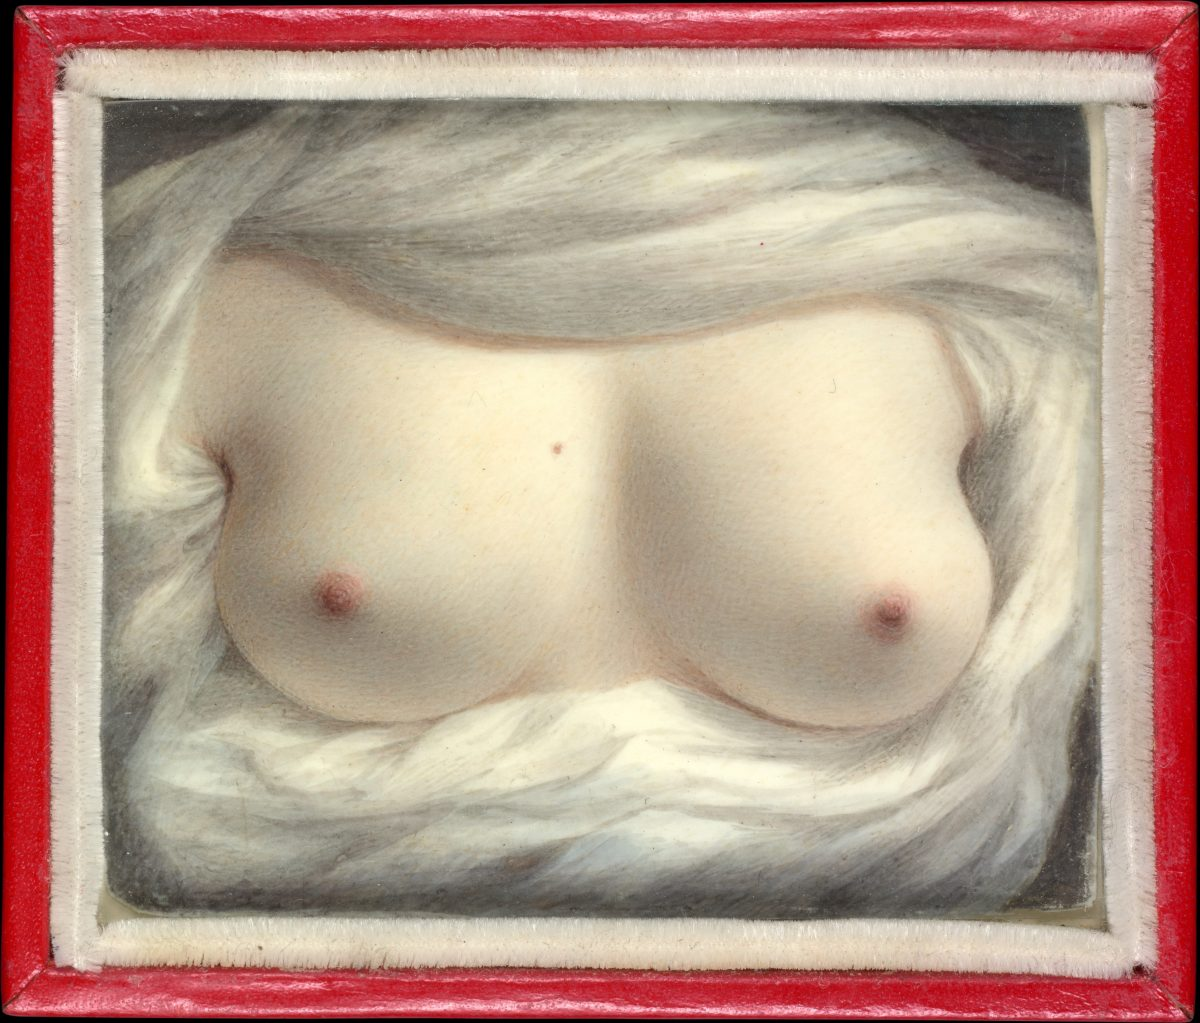 Sarah Goodridge's Beauty Revealed Sarah Goodridge Nude Breasts 1828